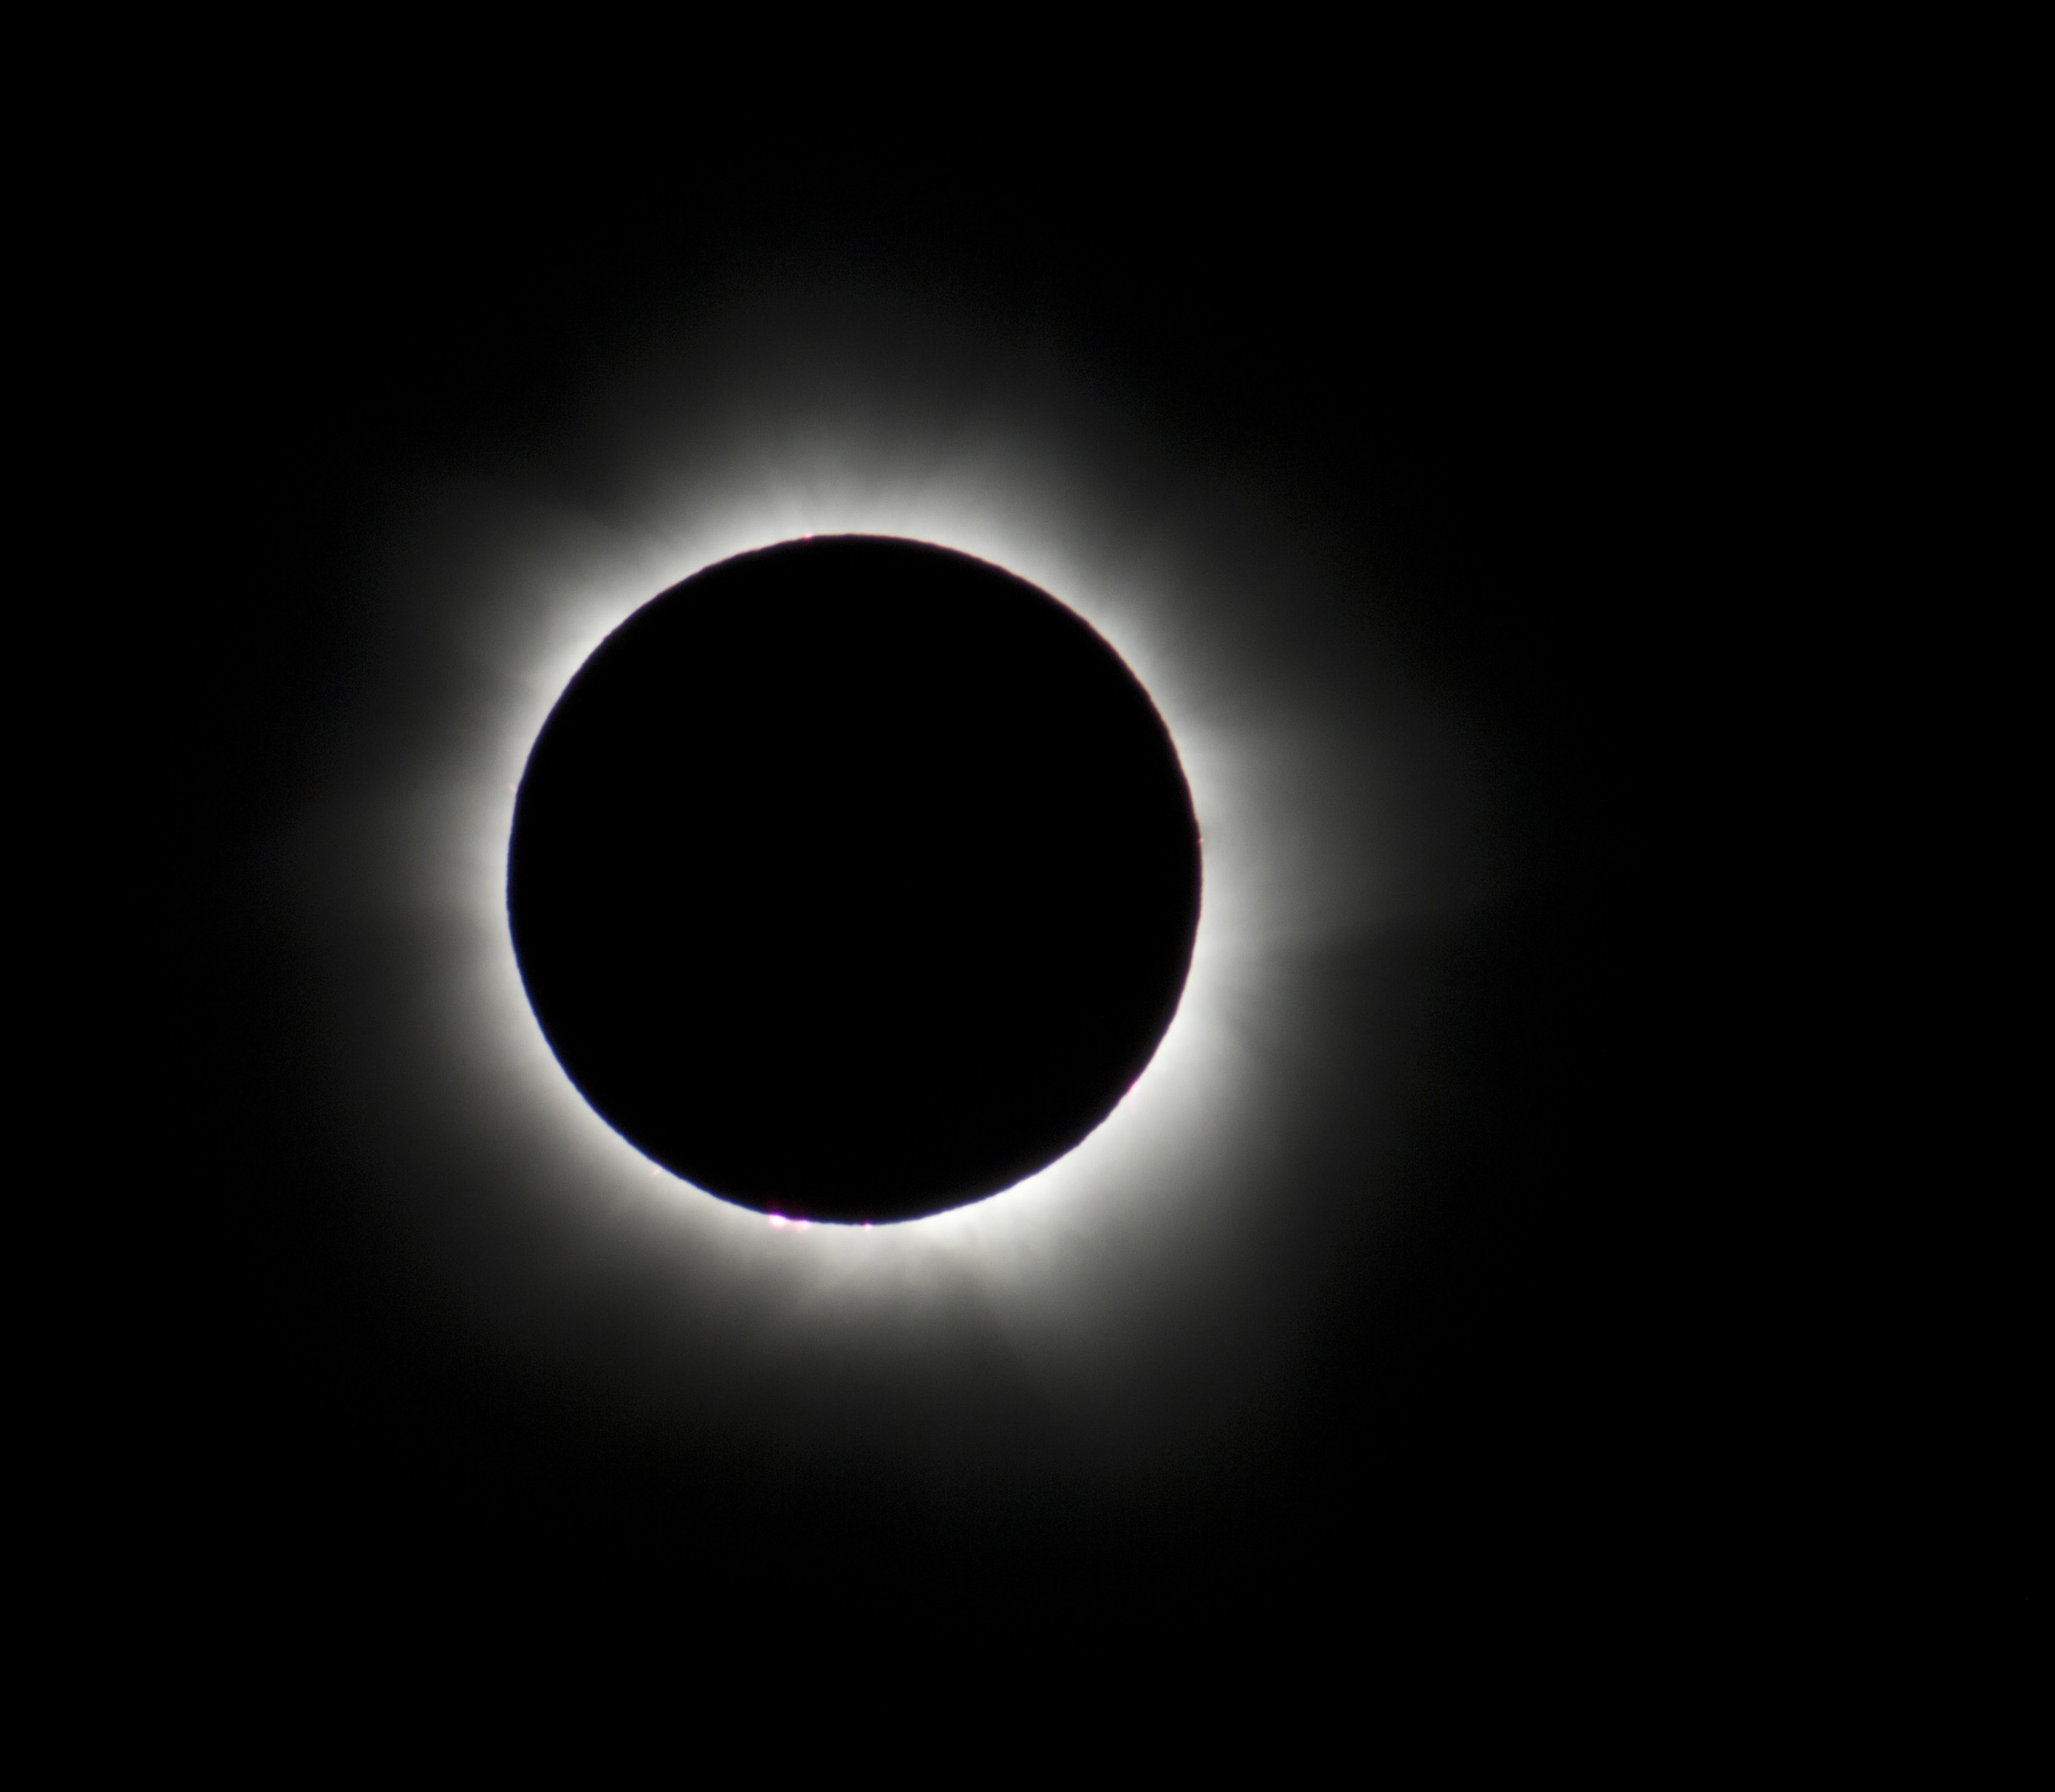 An eclipse in totality, prominences can be seen as can the light reflection from the suns corona